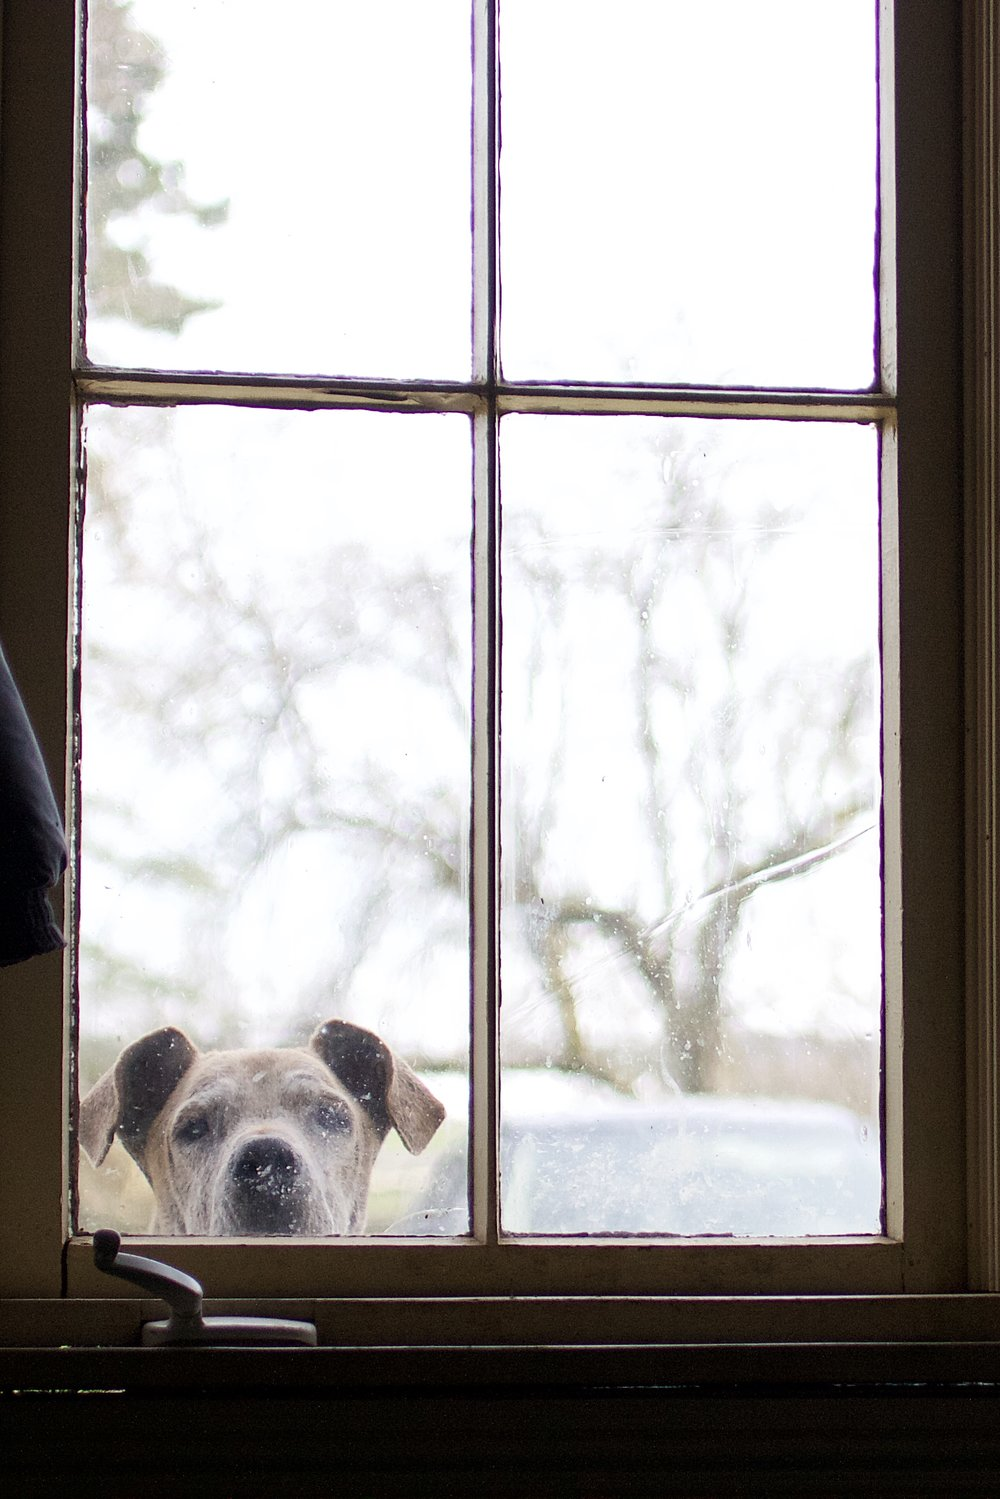 Every family has a weird nosy uncle. At Madison's newly adopted family - it's Buster the dog.